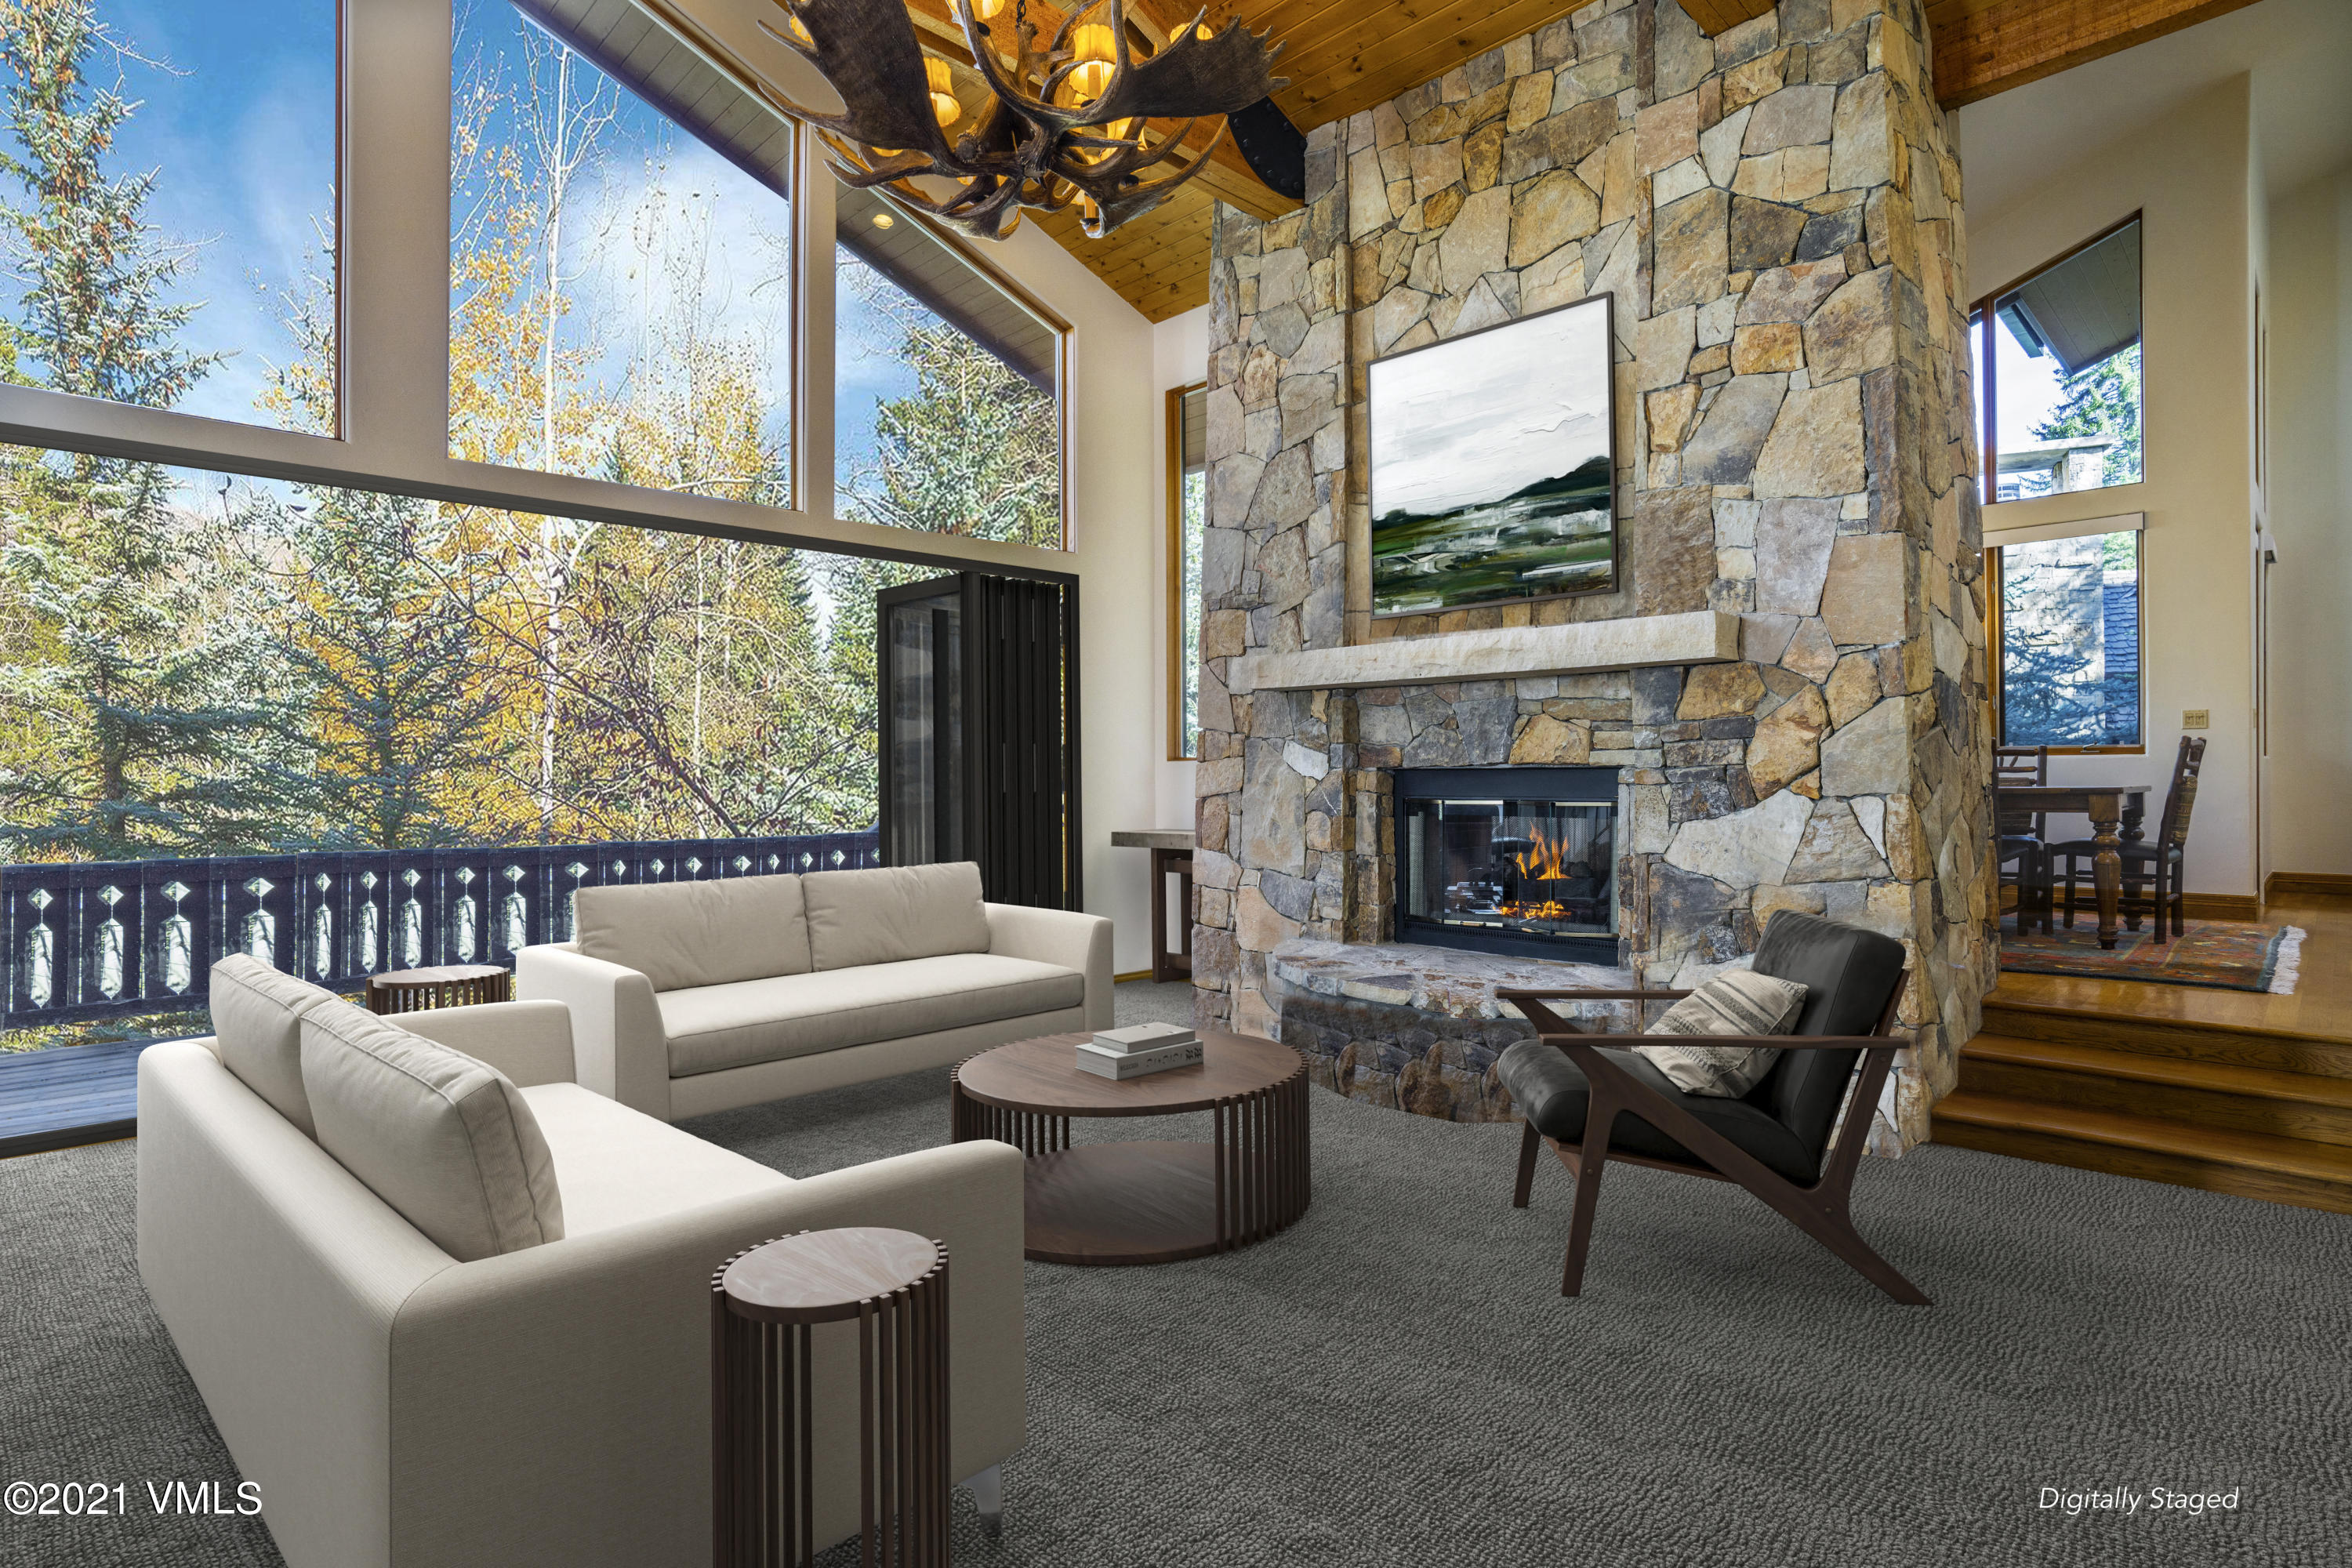 Conveniently nestled at the intersection of the prestigious Forest and Rockledge Roads in Vail Village, this home enjoys a special location on Vail's renowned mountain - close to skiing and Village activities, yet tucked away in the forest for quiet and privacy.  A beautiful mountain chalet, the home is perfectly proportioned for family, friends and guests. Its main level includes towering vaulted ceilings creating vertical volume, and walls of windows on the east and north beckoning in mountain sunlight through the surrounding pines. A stunning stone chimney between the living room and dining room defines the two spaces while its double-sided fireplace provides warmth to and ambiance for both. The spacious living room has separate areas for lounging and playing games, includes a wet bar and opens to a cozy den for reading or tv watching that is adjacent to that now coveted dedicated office space. This large main level living room has a wall of glass doors that open to an expansive wrap-around deck big enough for multiple sitting areas enabling a variety of indoor/outdoor living and entertaining options. The straightforward kitchen boasts bountiful cabinet space, double wall ovens, 5-burner gas cooktop and another wall of windows for light and bright cooking. Separate from the guest rooms, the spacious upper level master suite includes two bathrooms, its own walk-out deck and a picturesque Juliette balcony. The home's lower level features a walk-out family room with fireplace and three additional bedrooms each with their own direct access to another large deck complete with hot tub and big enough for a hammock...perfect for lounging after a day on the slopes or mountain bike.  Features of this home include heated stone driveway, epoxy floors in the 2-car garage, expansive deck space on both levels, large bedrooms each with walk-out access to a deck, high ceilings and windows galore creating light and bright spaces throughout the home.